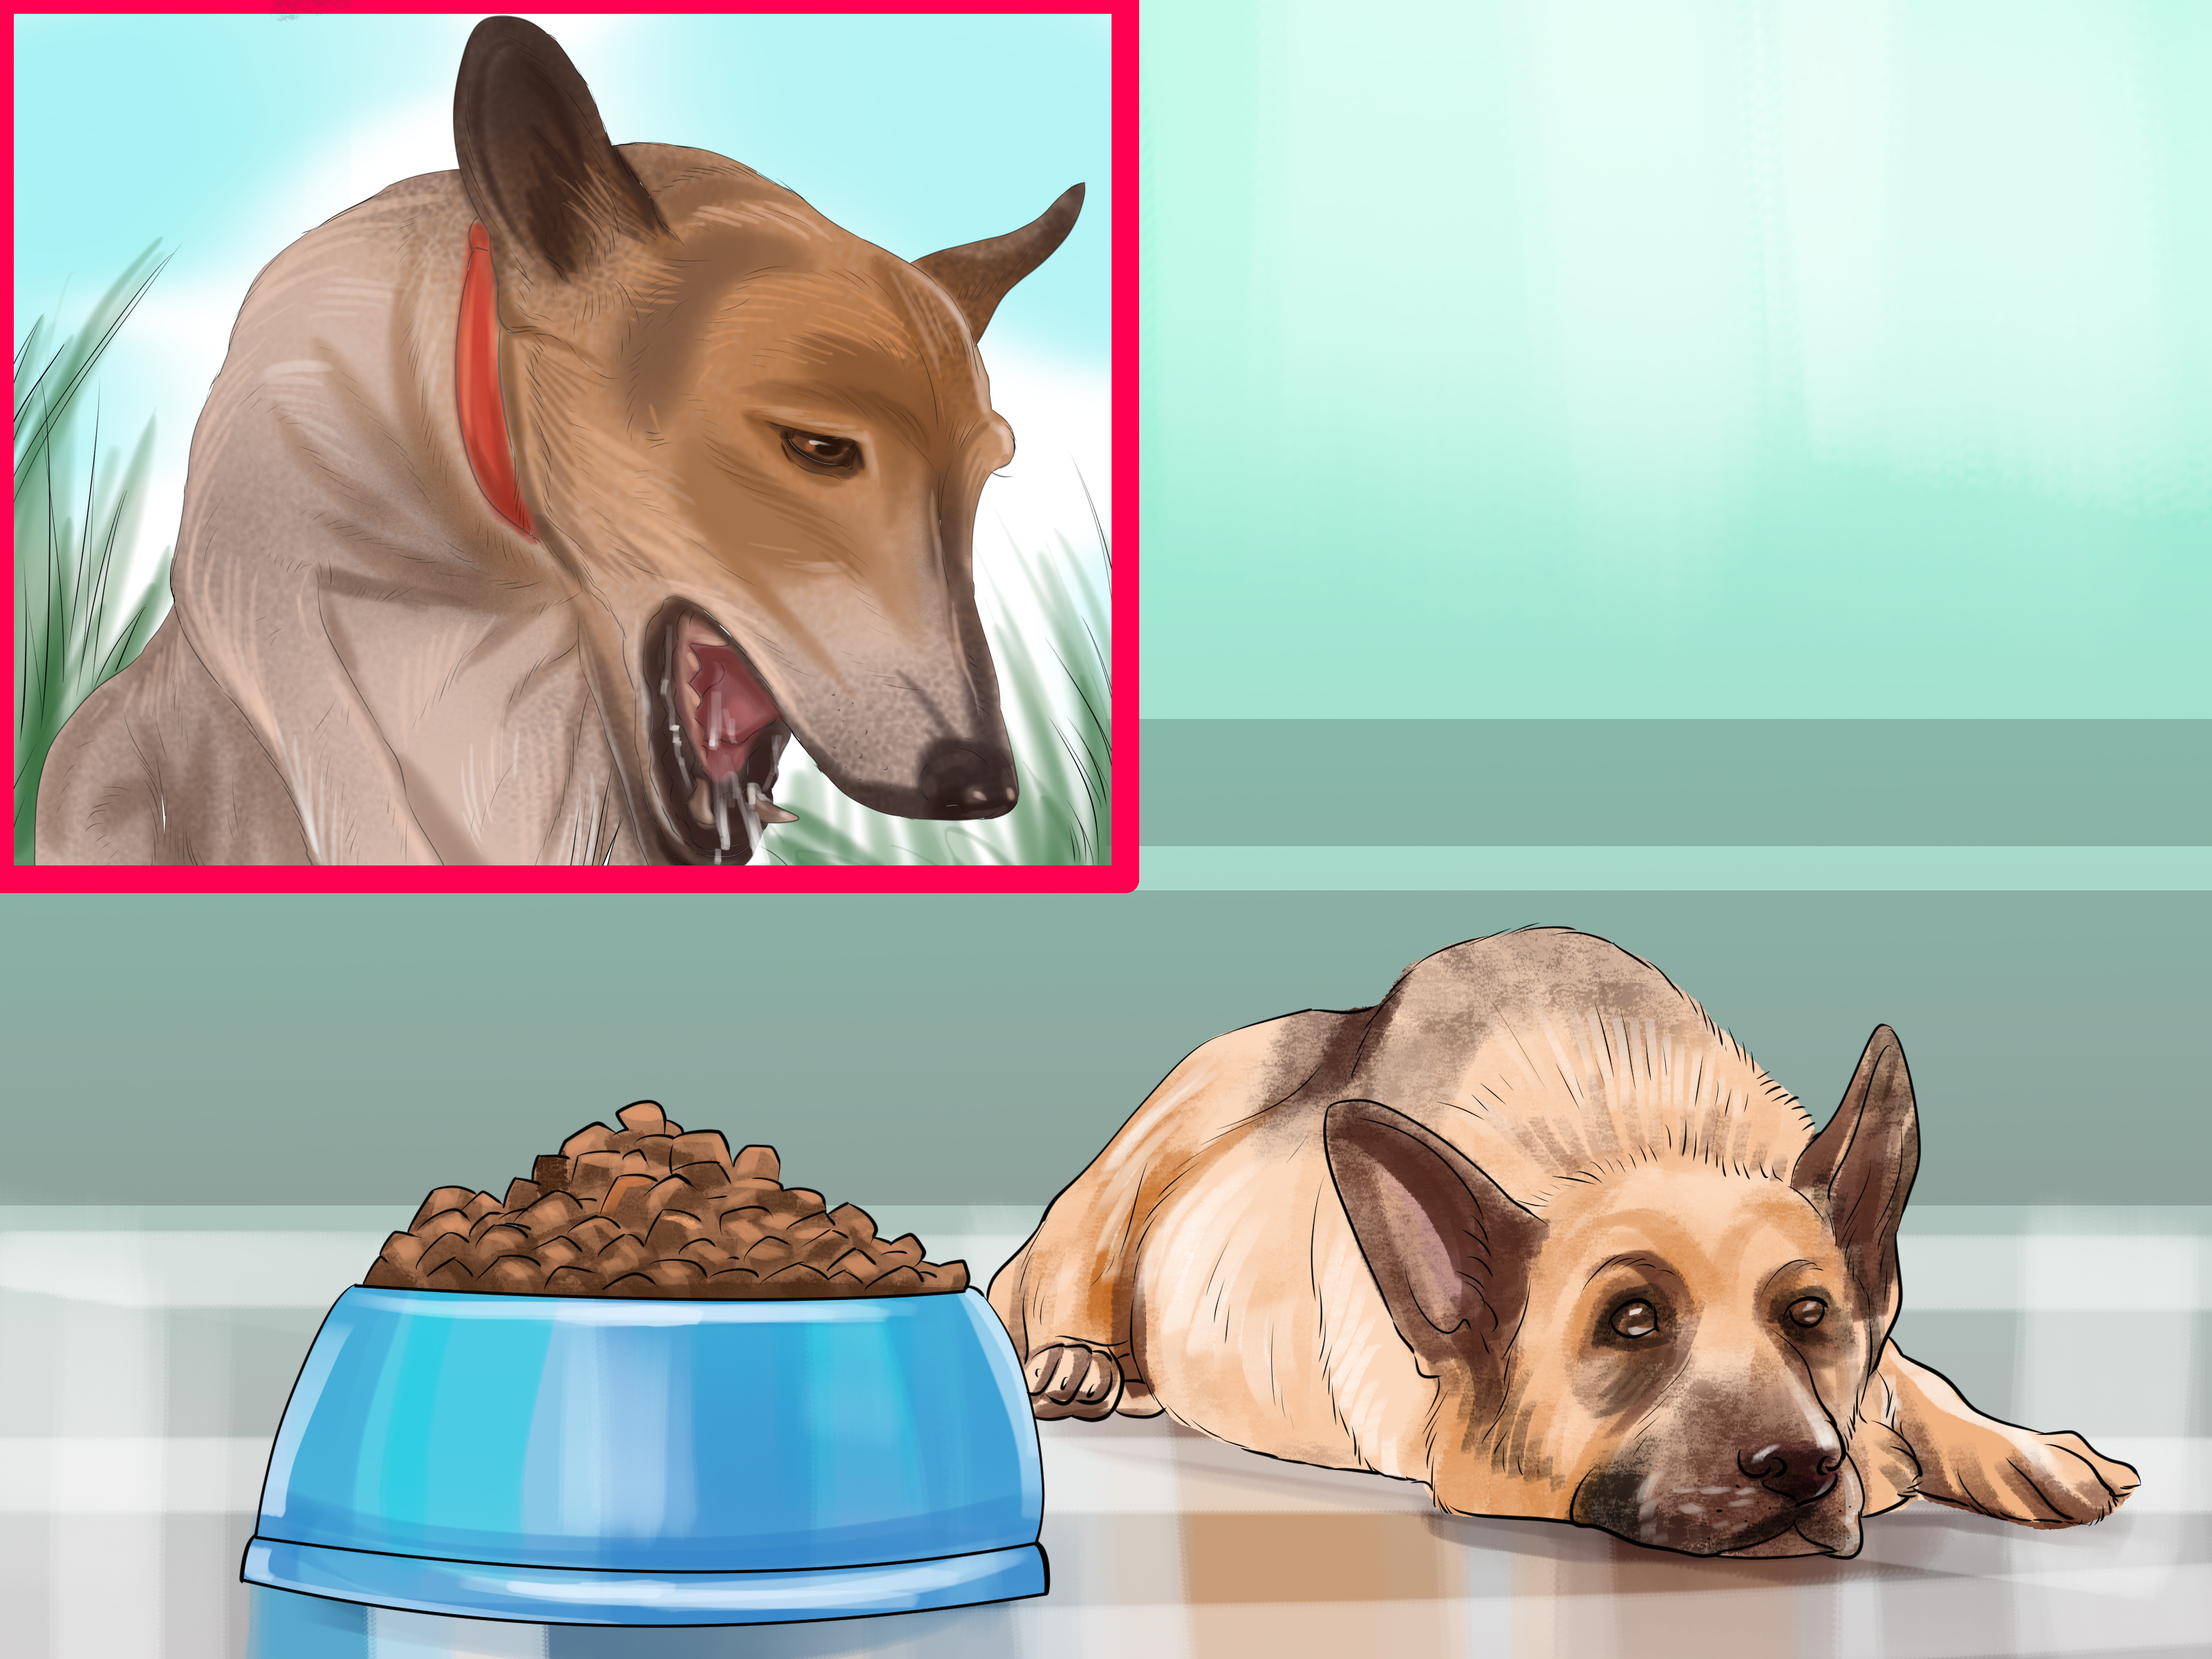 Fullsize Of How To Make A Dog Throw Up